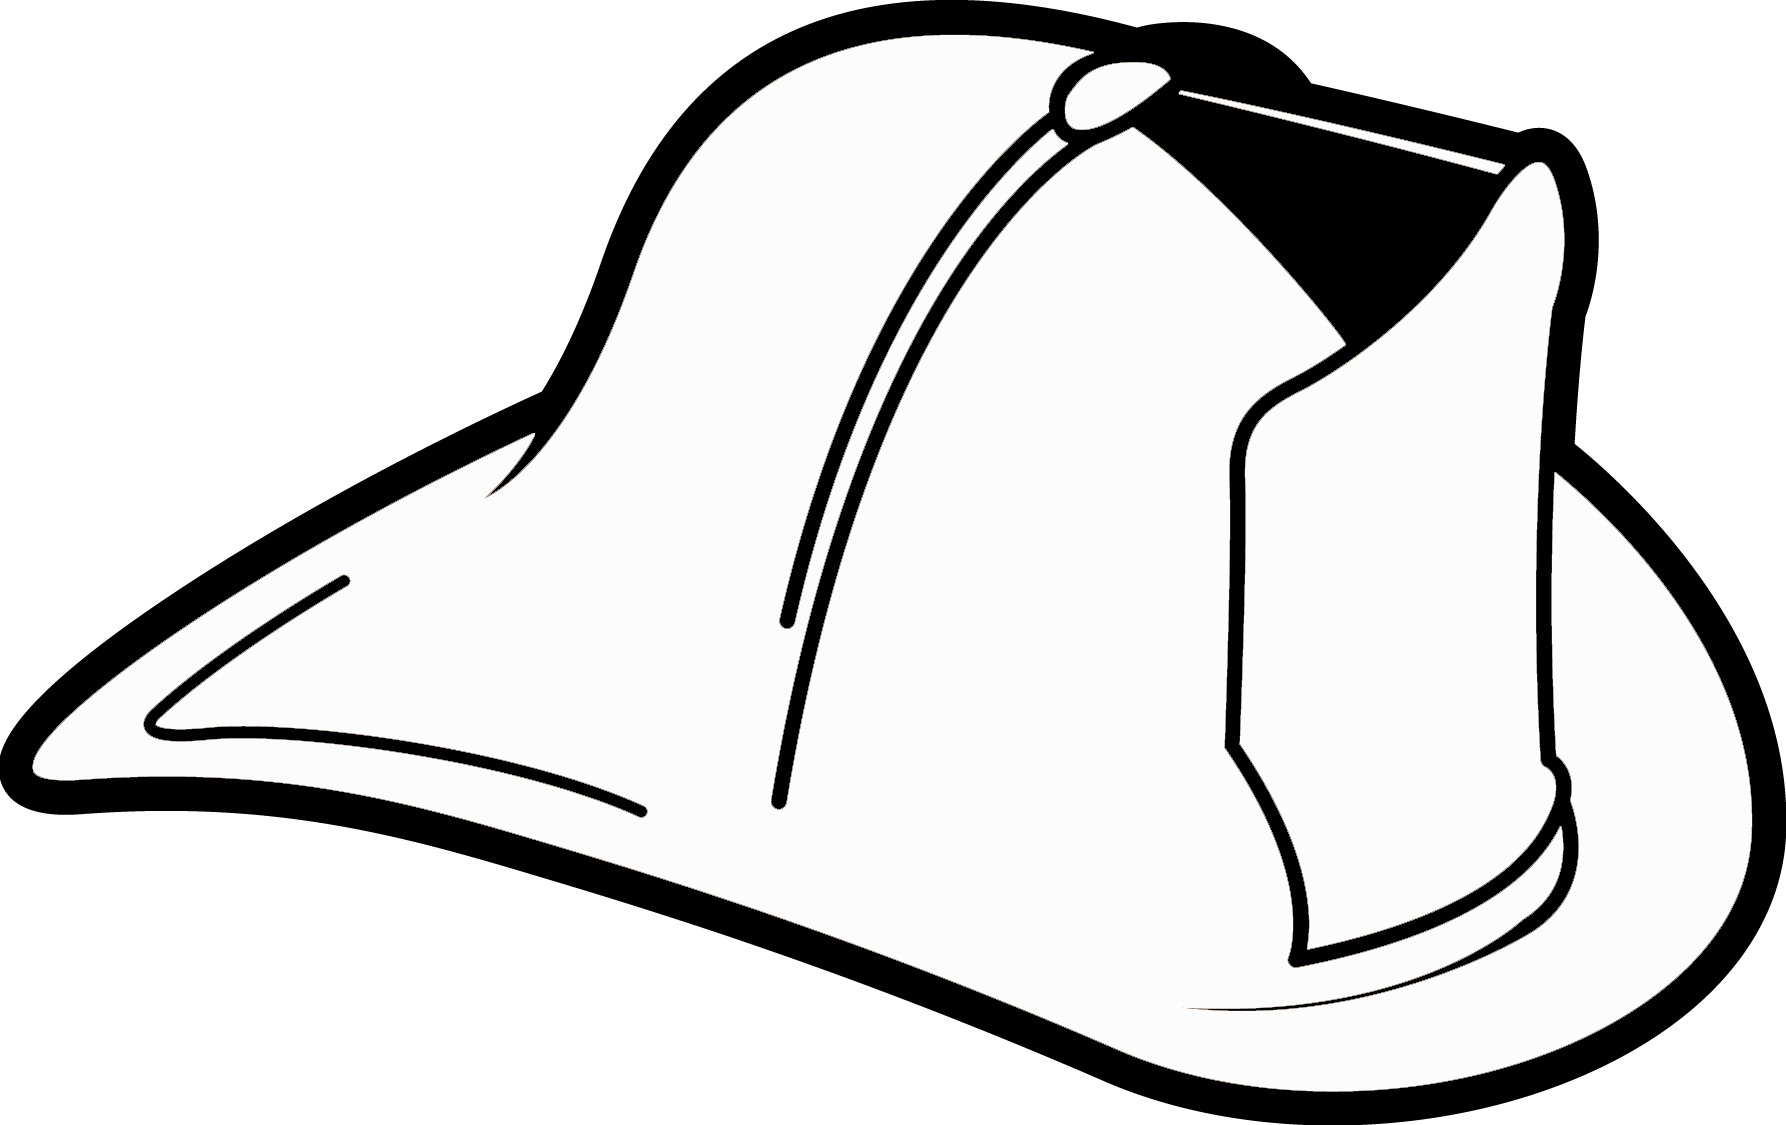 Fire hat fireman hat clipart black and white hd letters